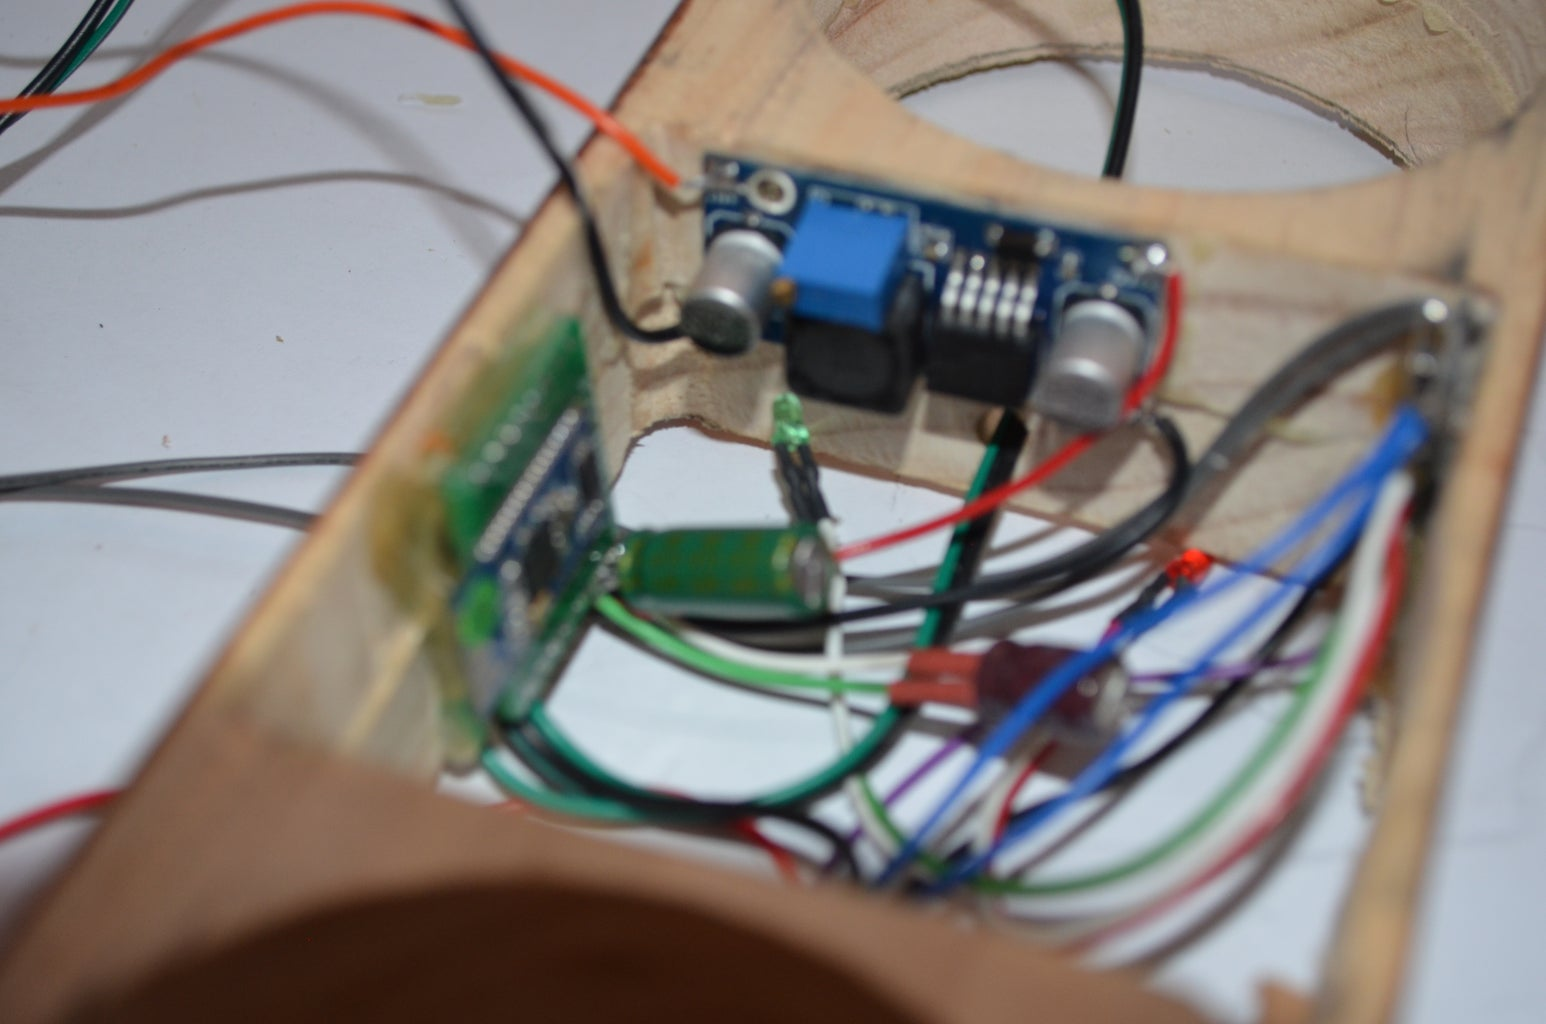 Mounting the Electronics